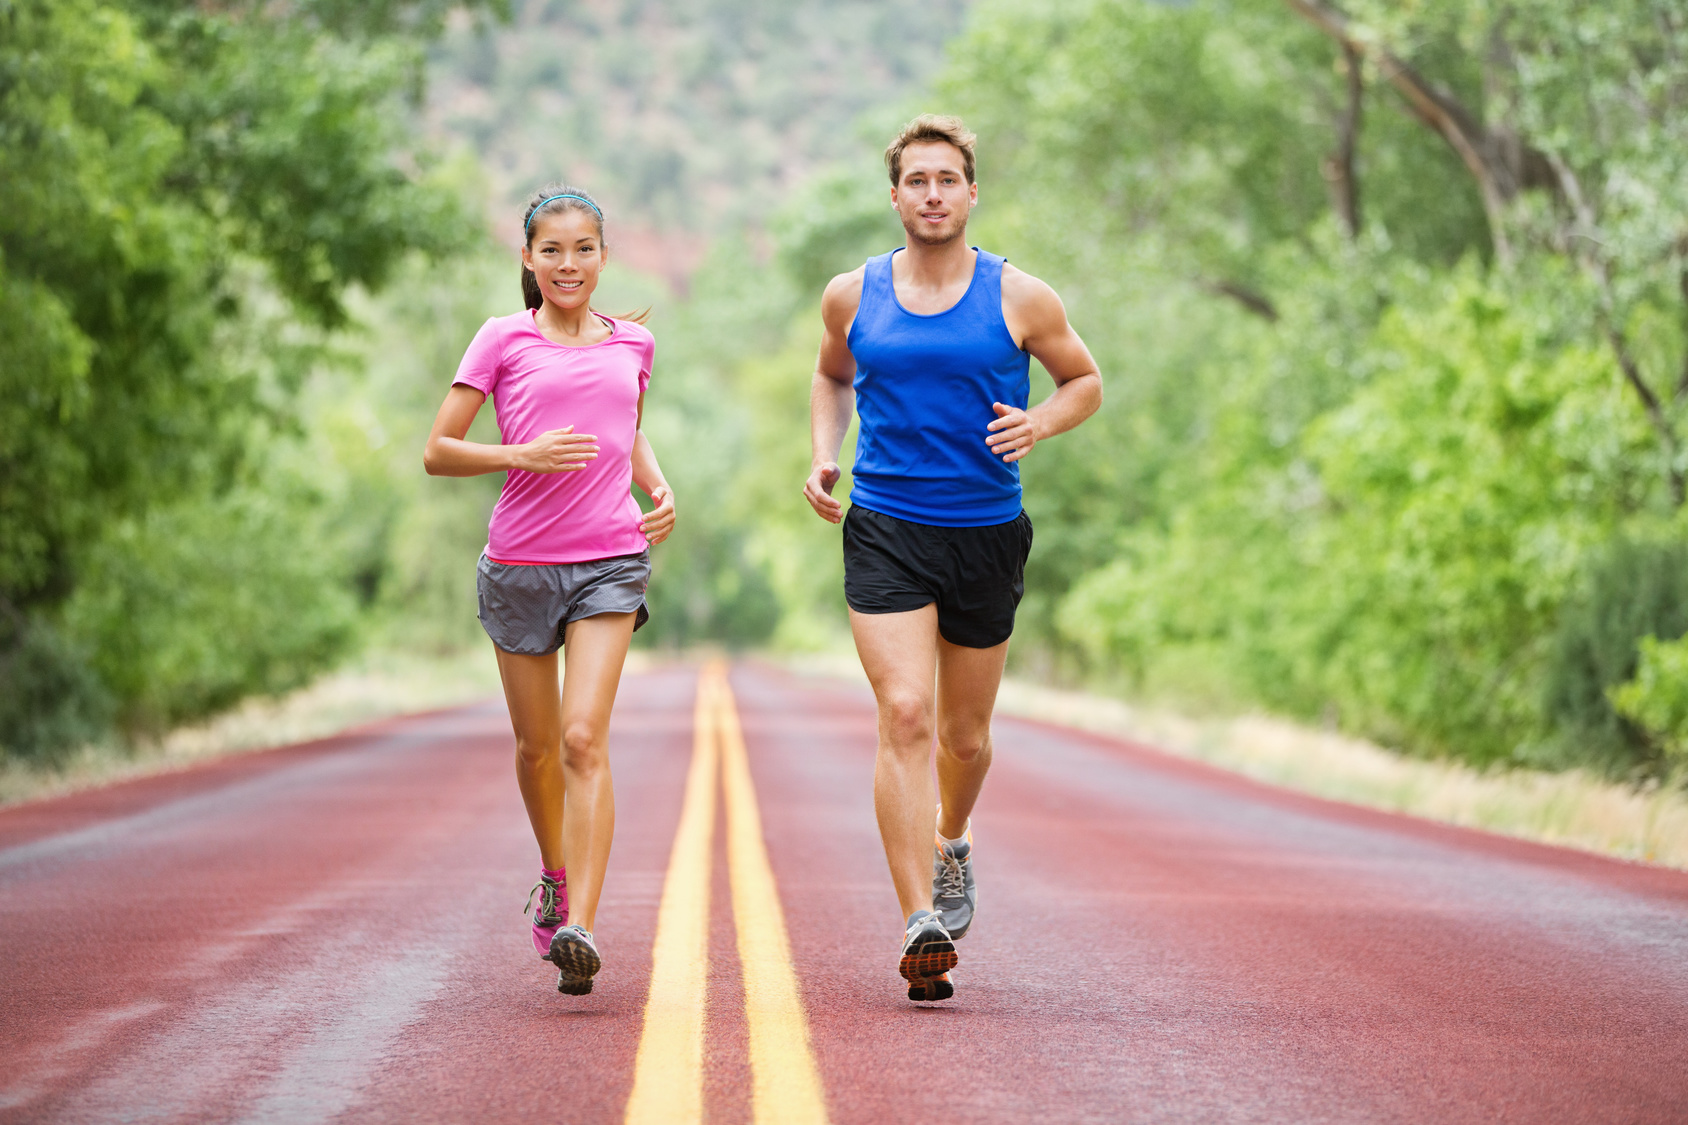 Athletes develop varicose veins due to the increase volume of blood that is pushed through the system. They may not feel as many symptoms until an injury causes them to slow down.